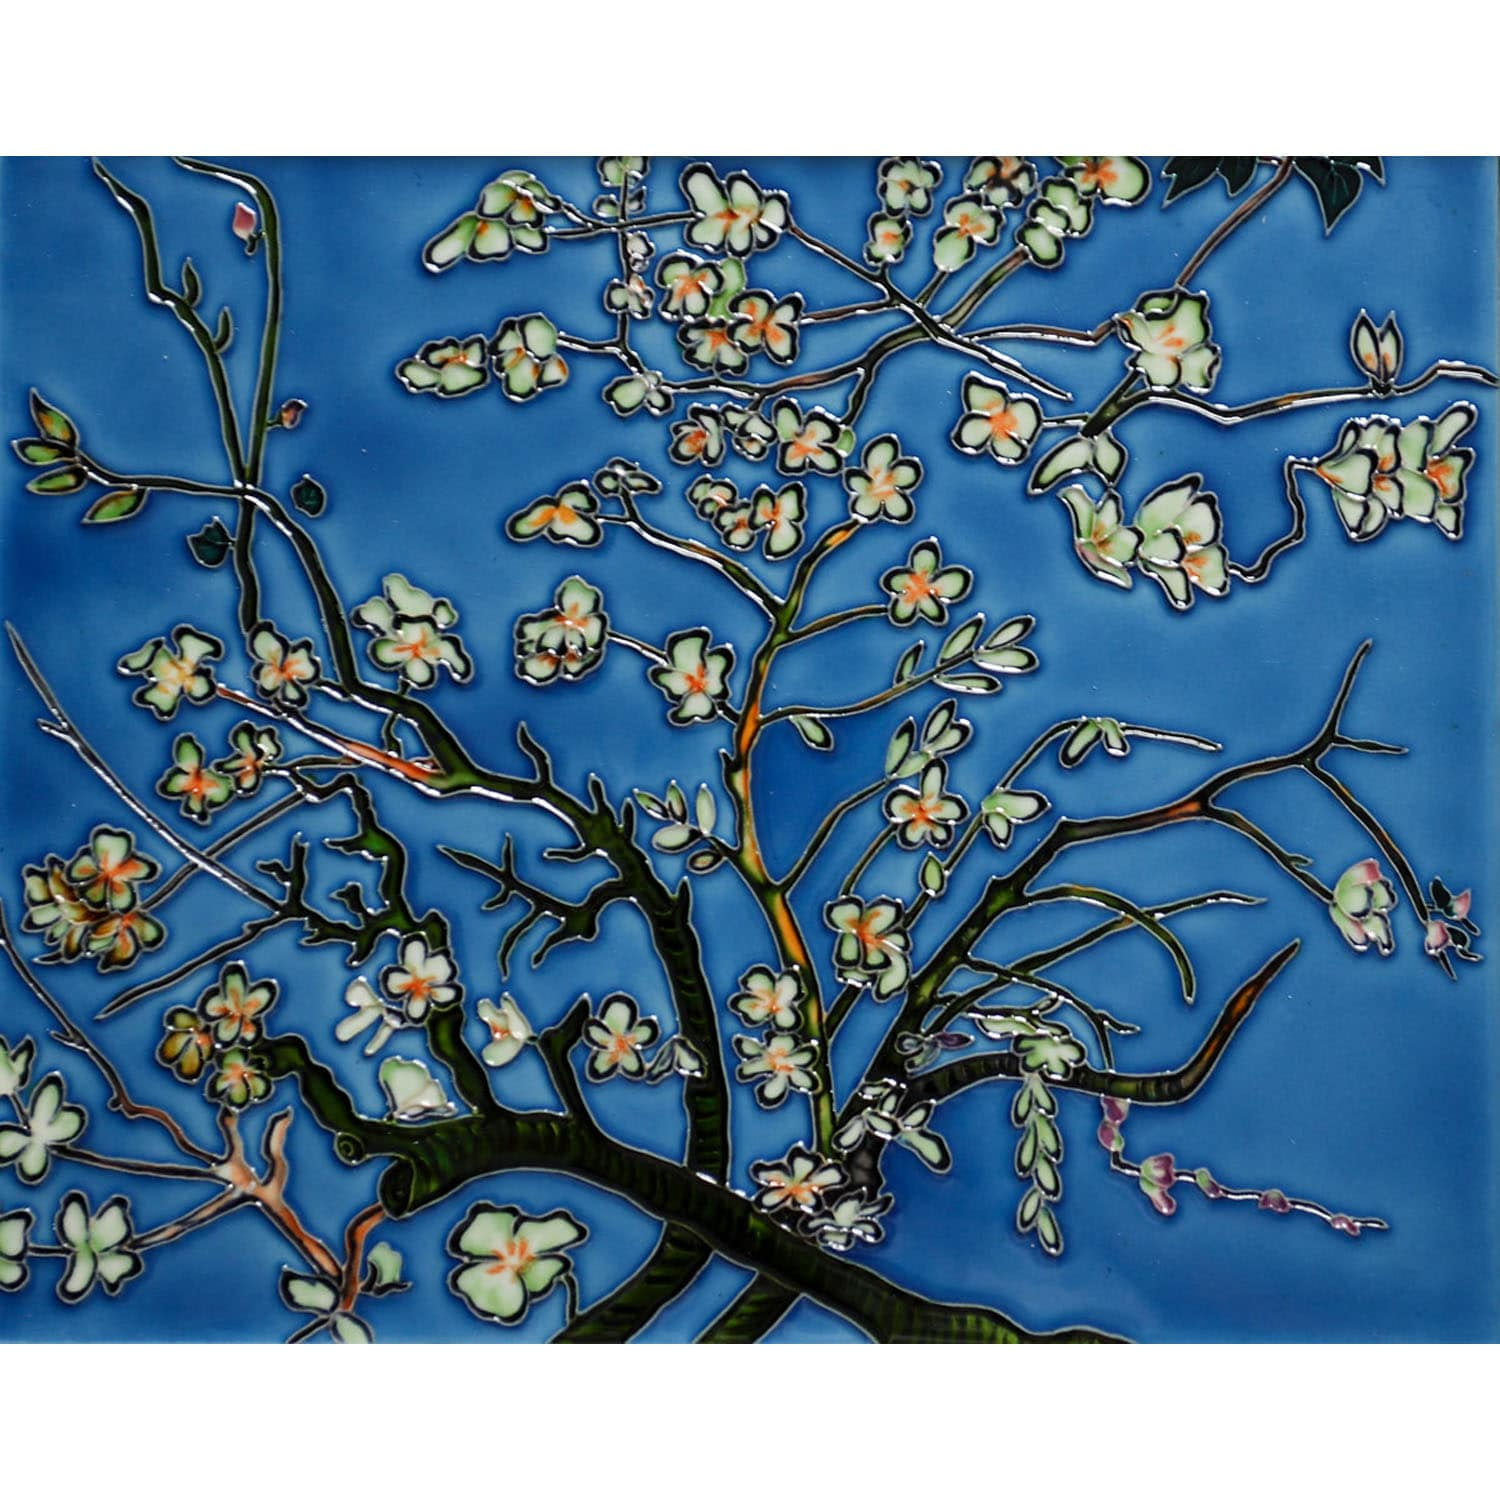 Van Gogh 'Branches of an Almond Tree in Blossom' Wall Tile